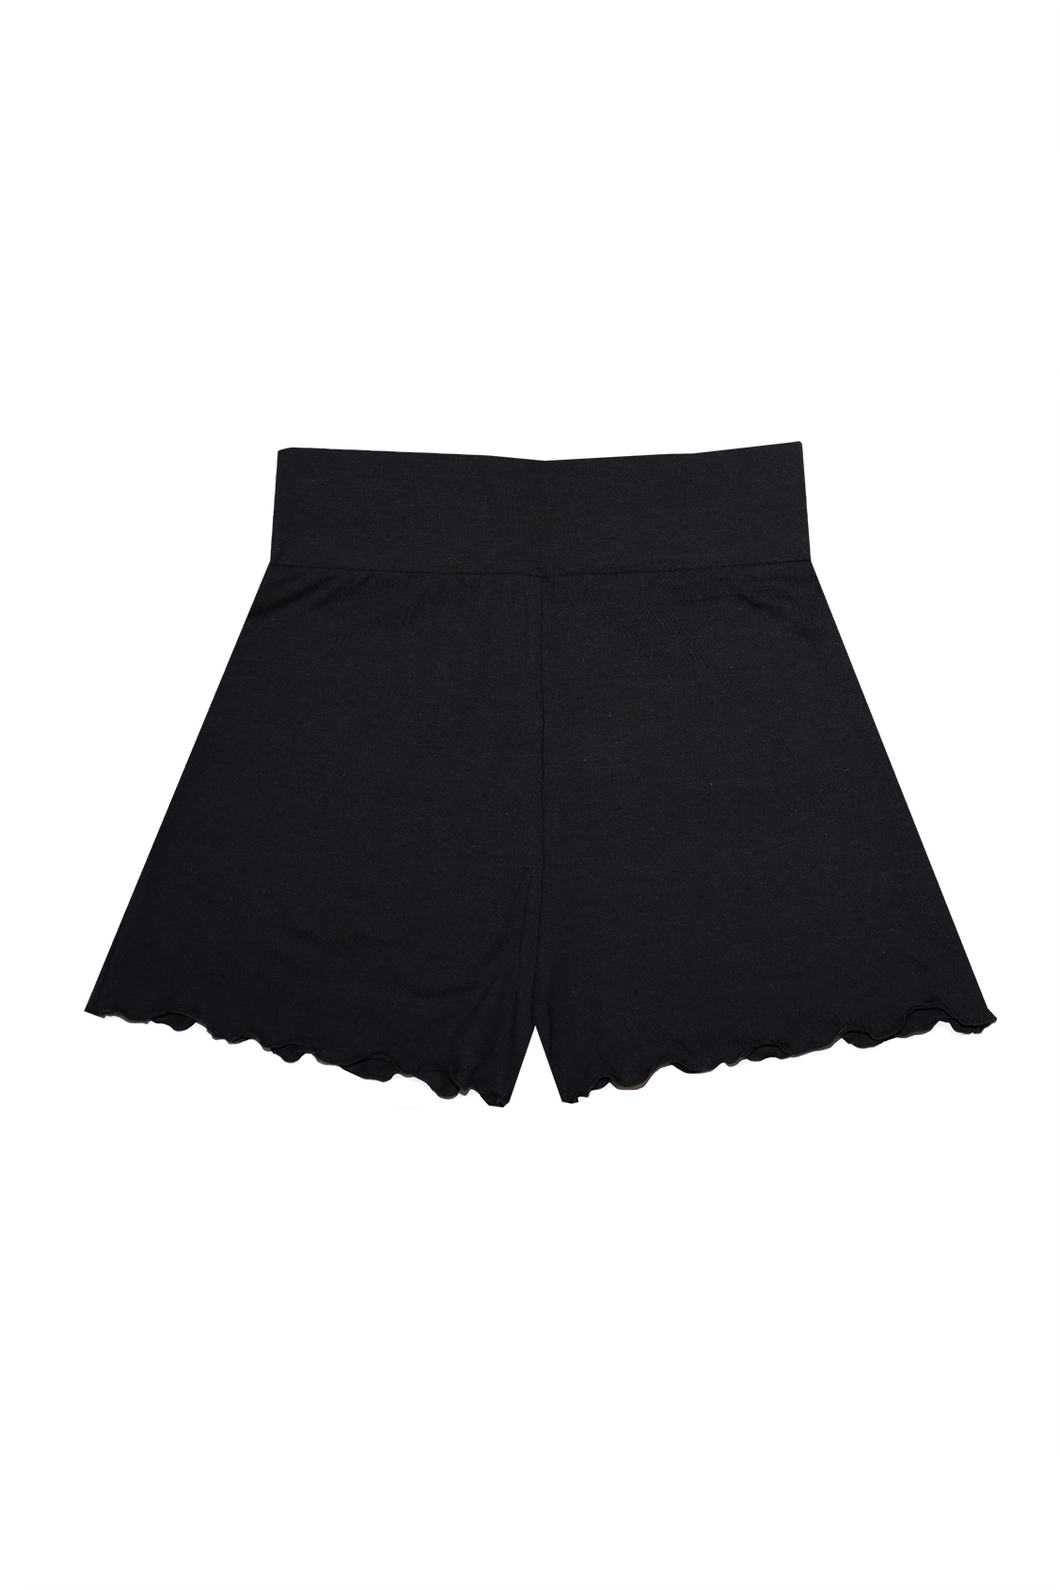 The Ruffle Shorts